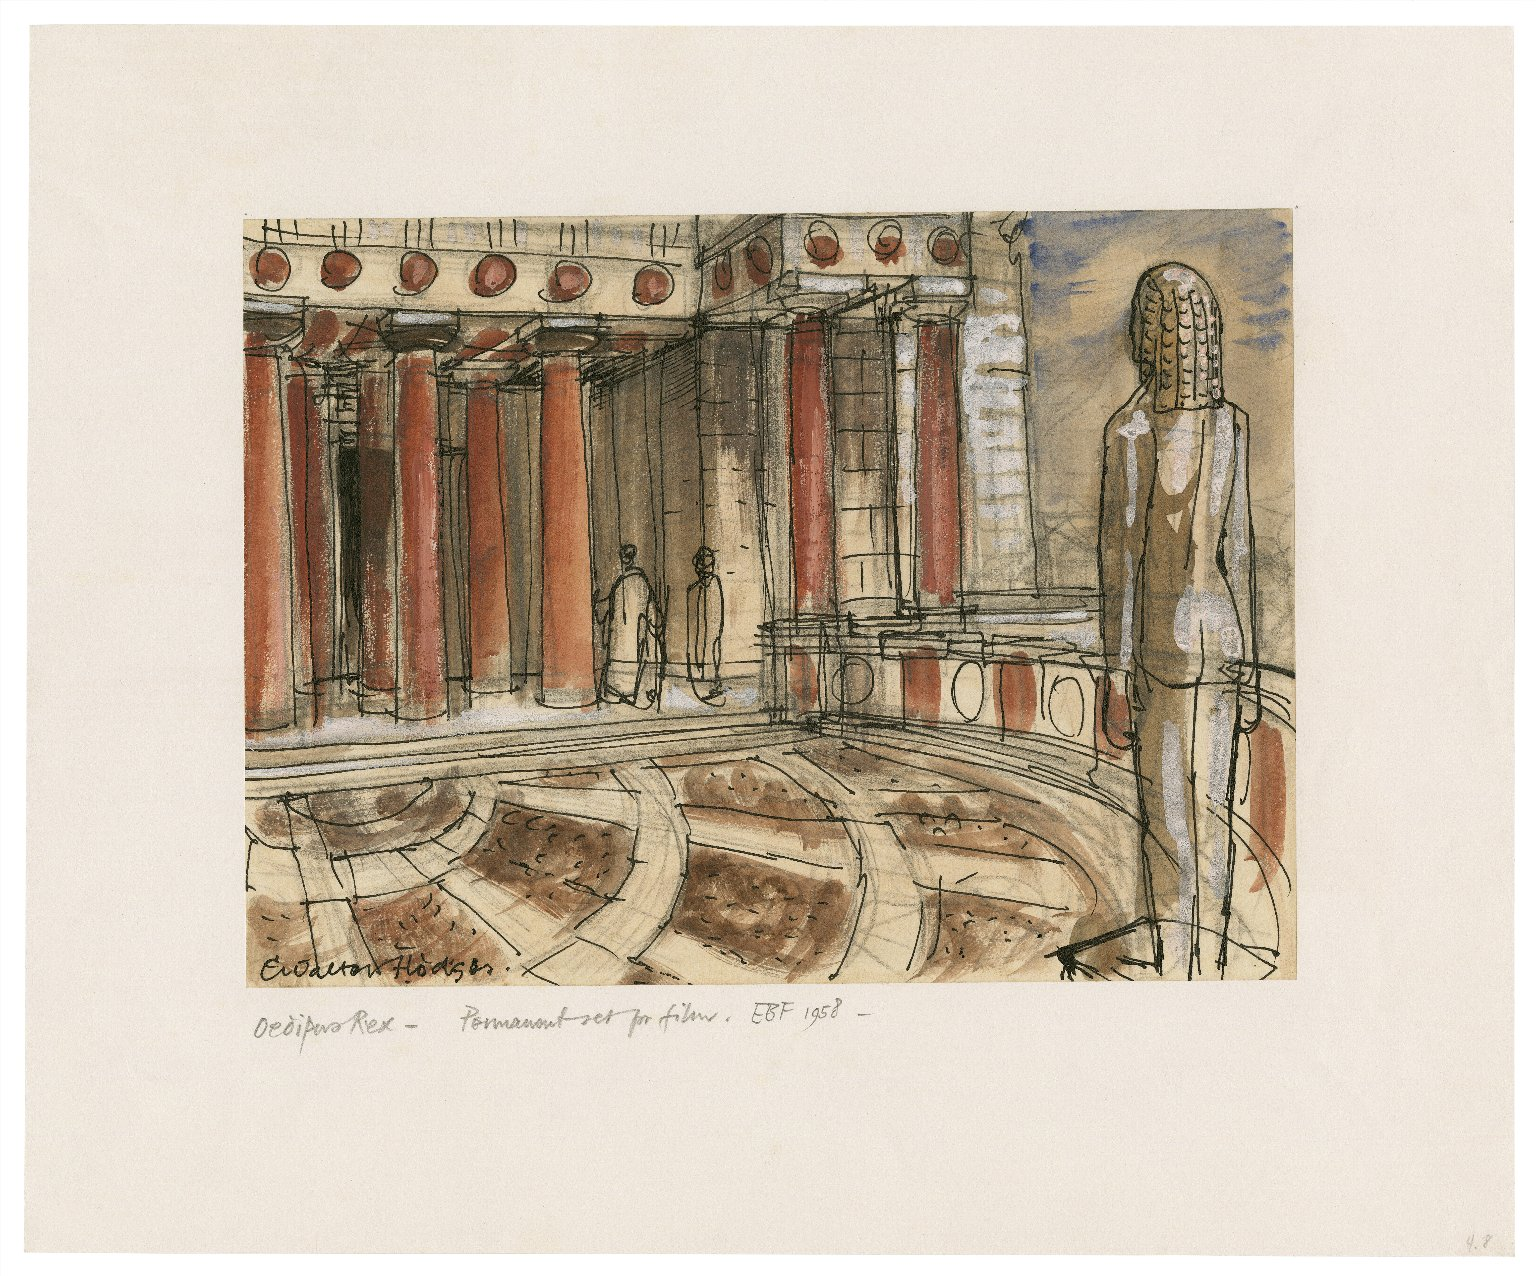 Oedipus Rex, the theater, with statue of Apollo